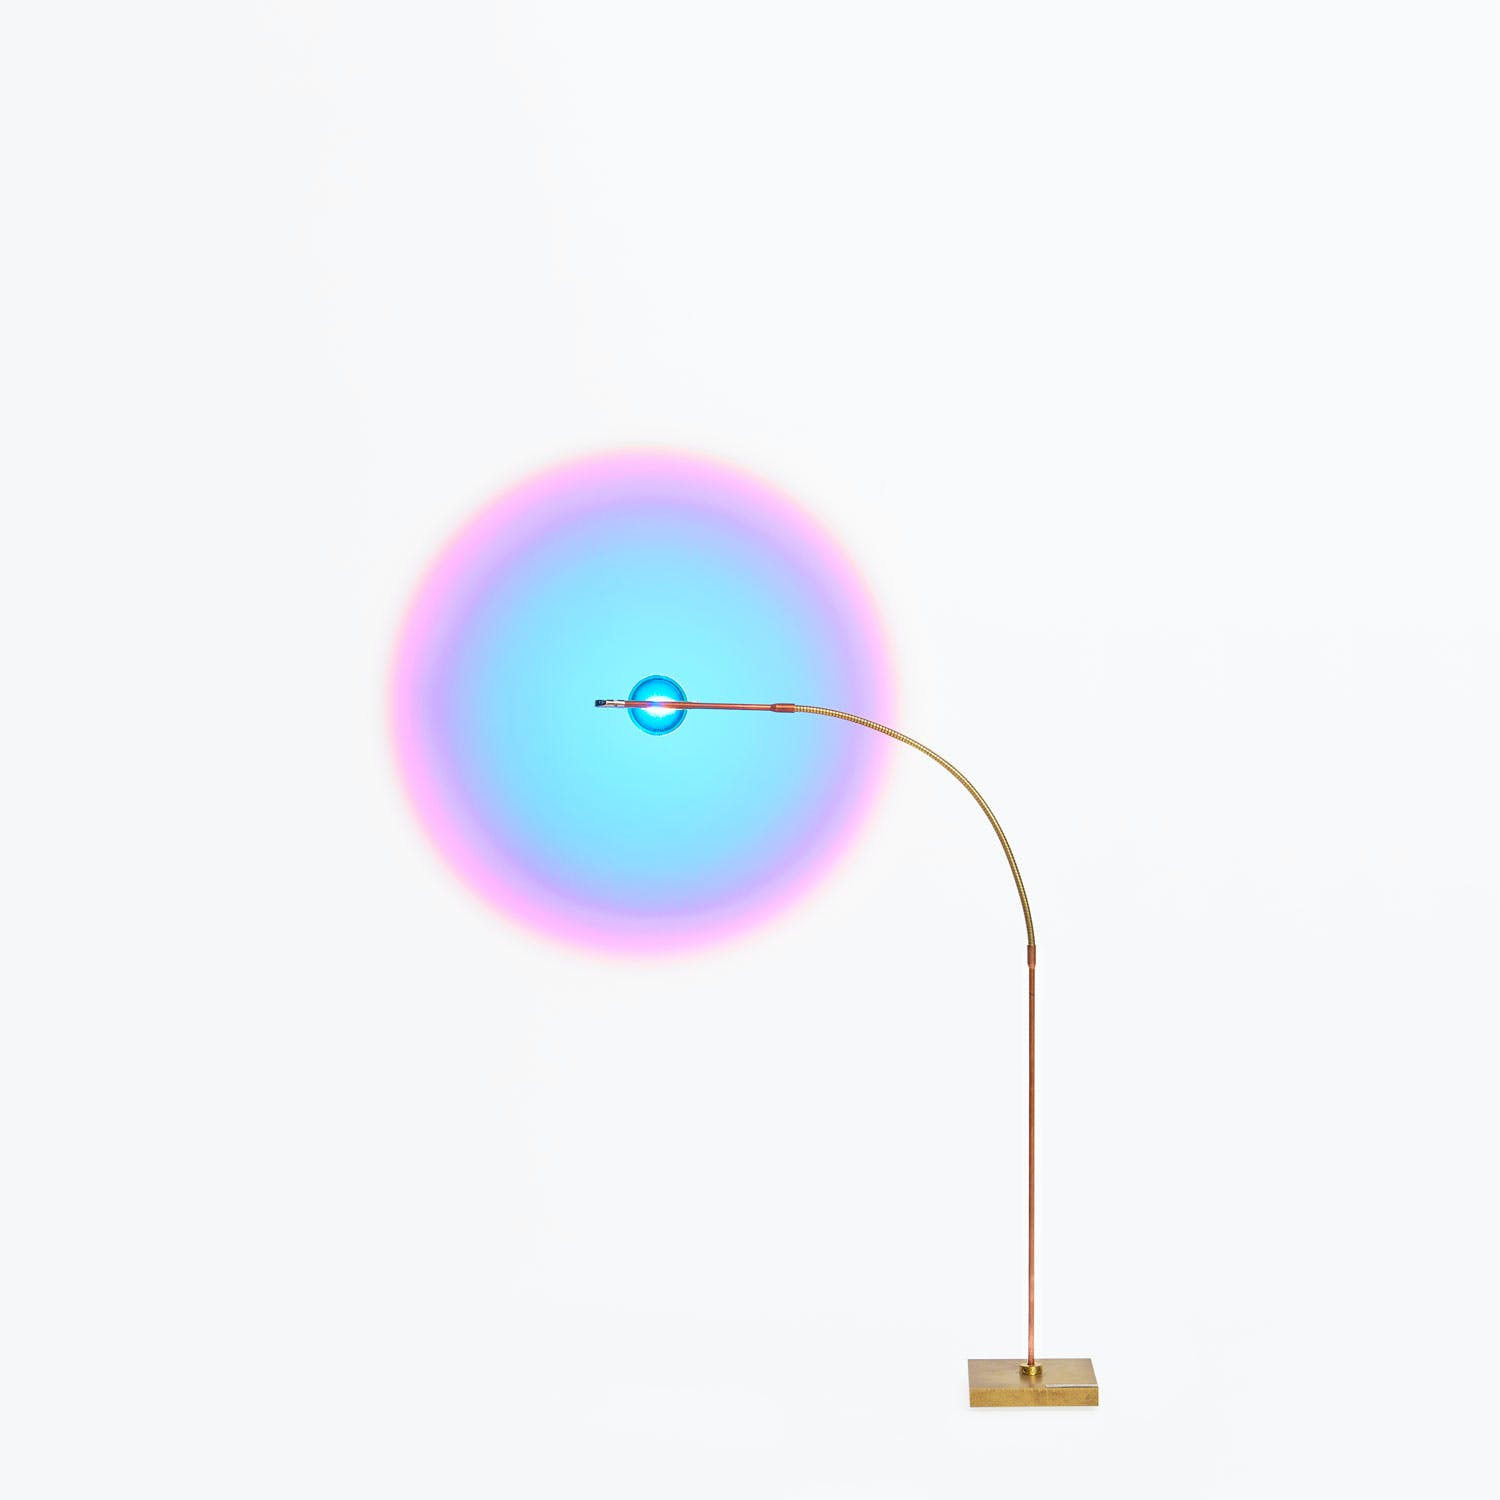 ABC Co-Create x Catellani & Smith Cosmos Nebula Lamp